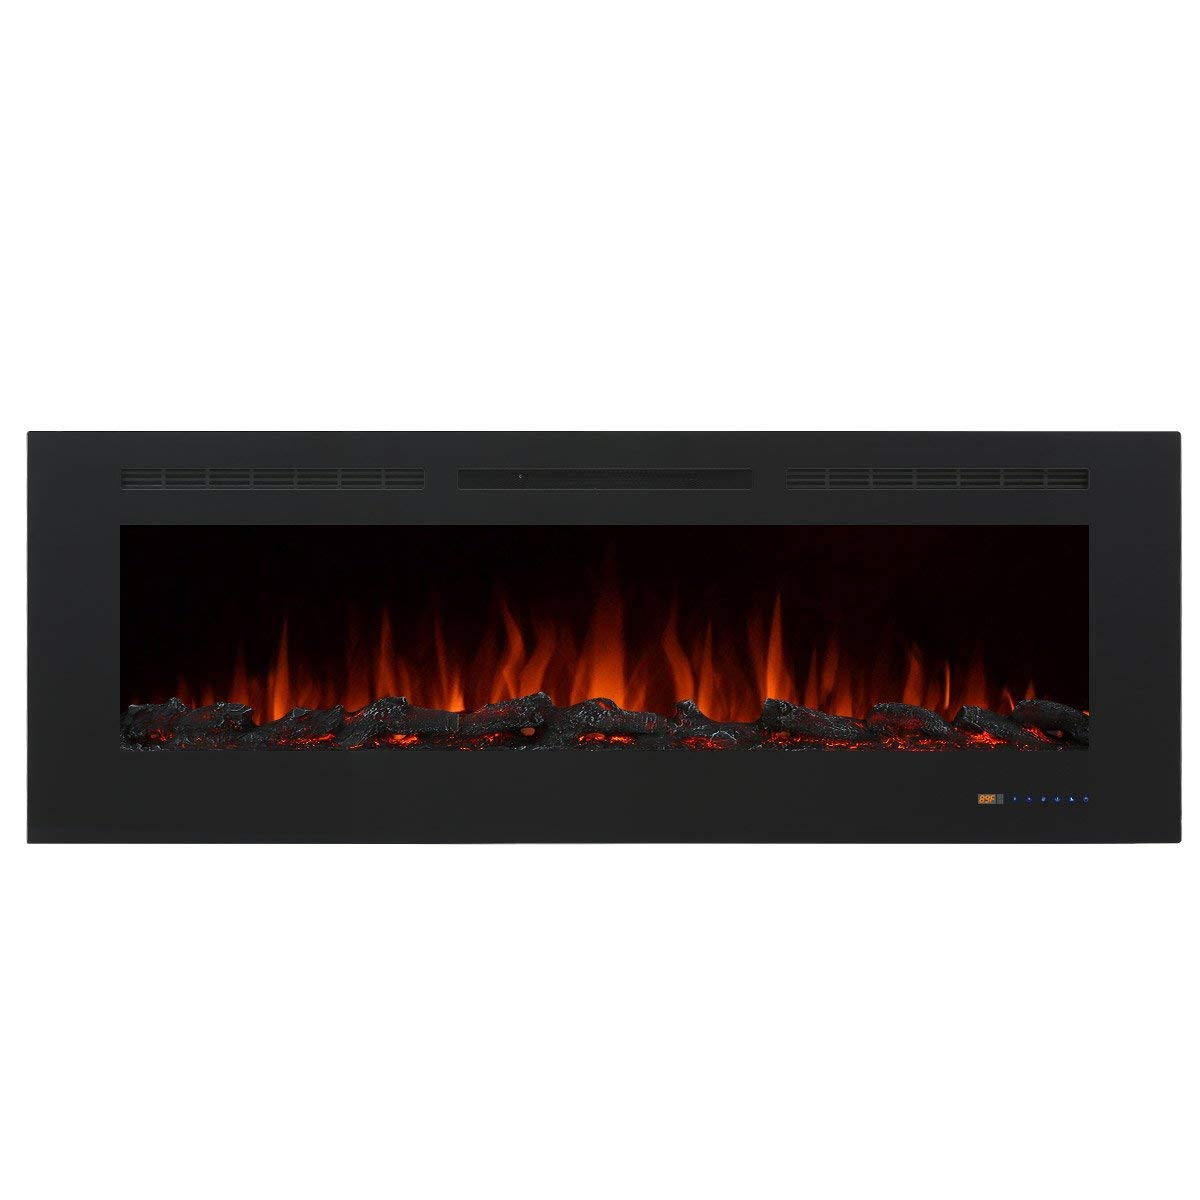 "Valuxhome Armanni 60"" 750W 1500W, Electric Fireplace Recessed Heater w  Touch Screen... by Valuxhome"